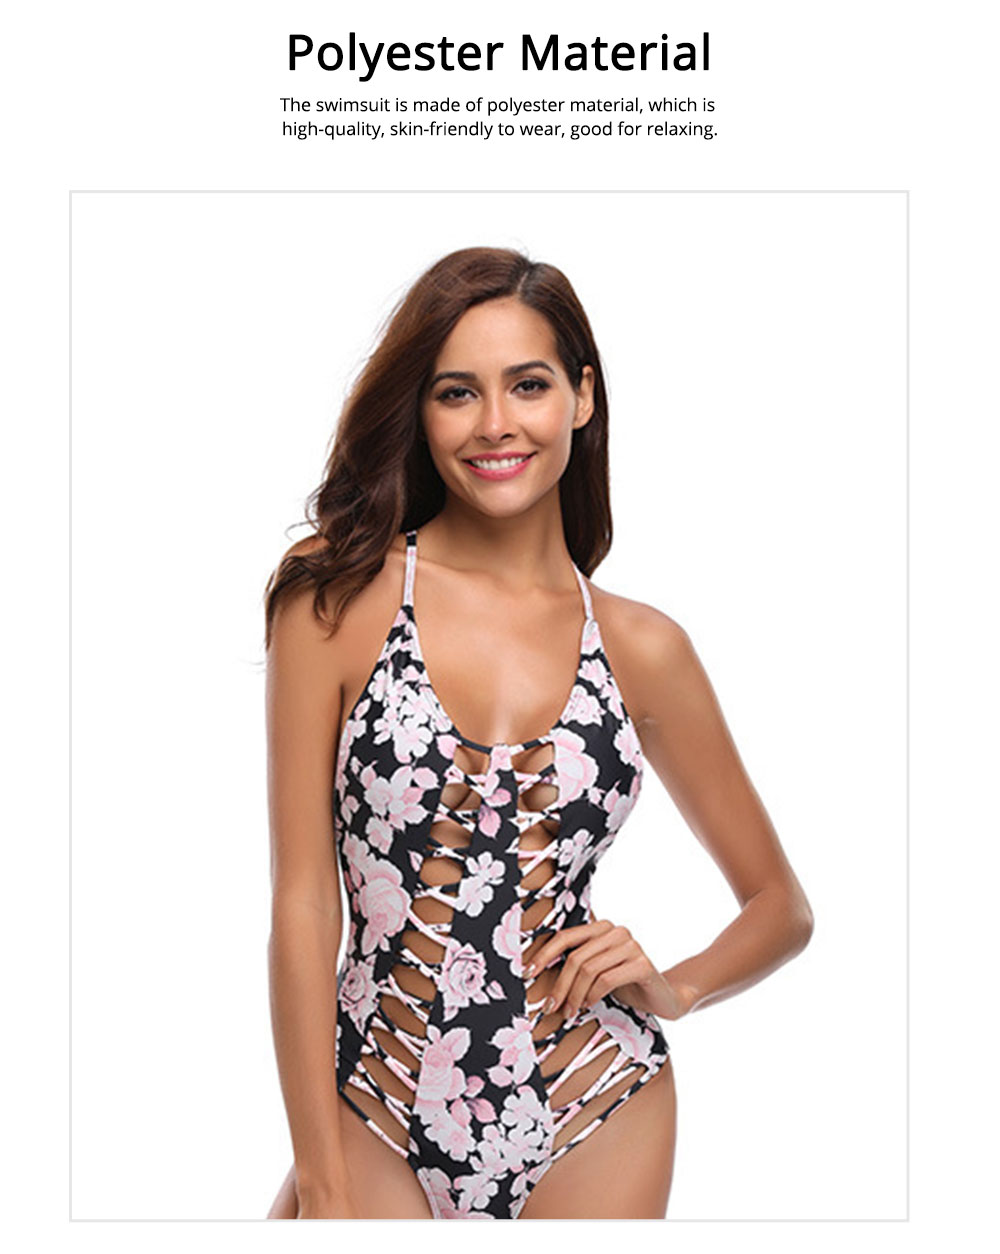 Polyester Material Swimsuit with Floral Printing Bikini for Women Bathing Suit Romper Style Summer Swimwear 2